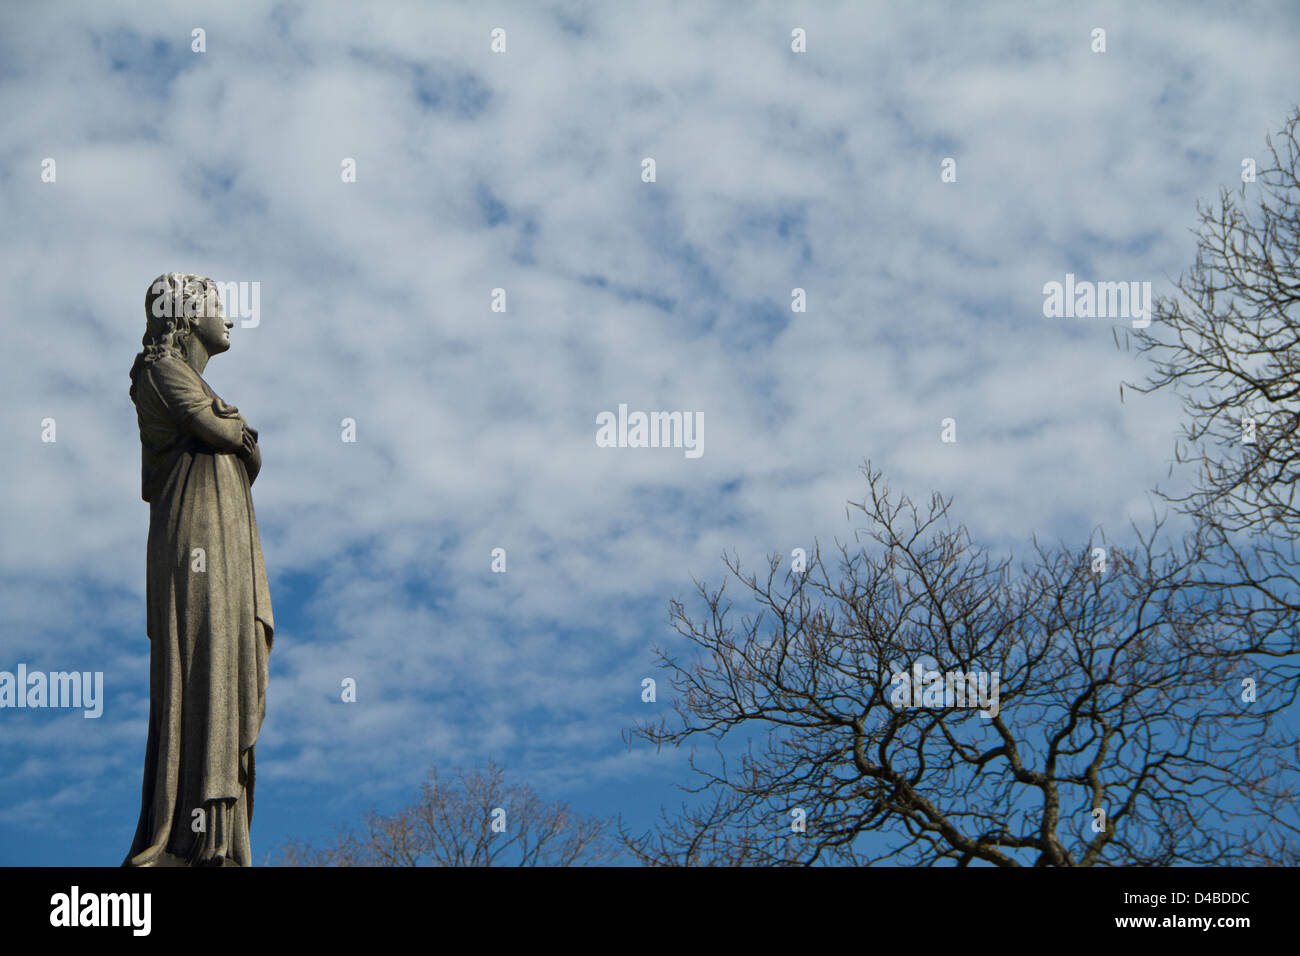 Female Statue in Graveyard - Stock Image